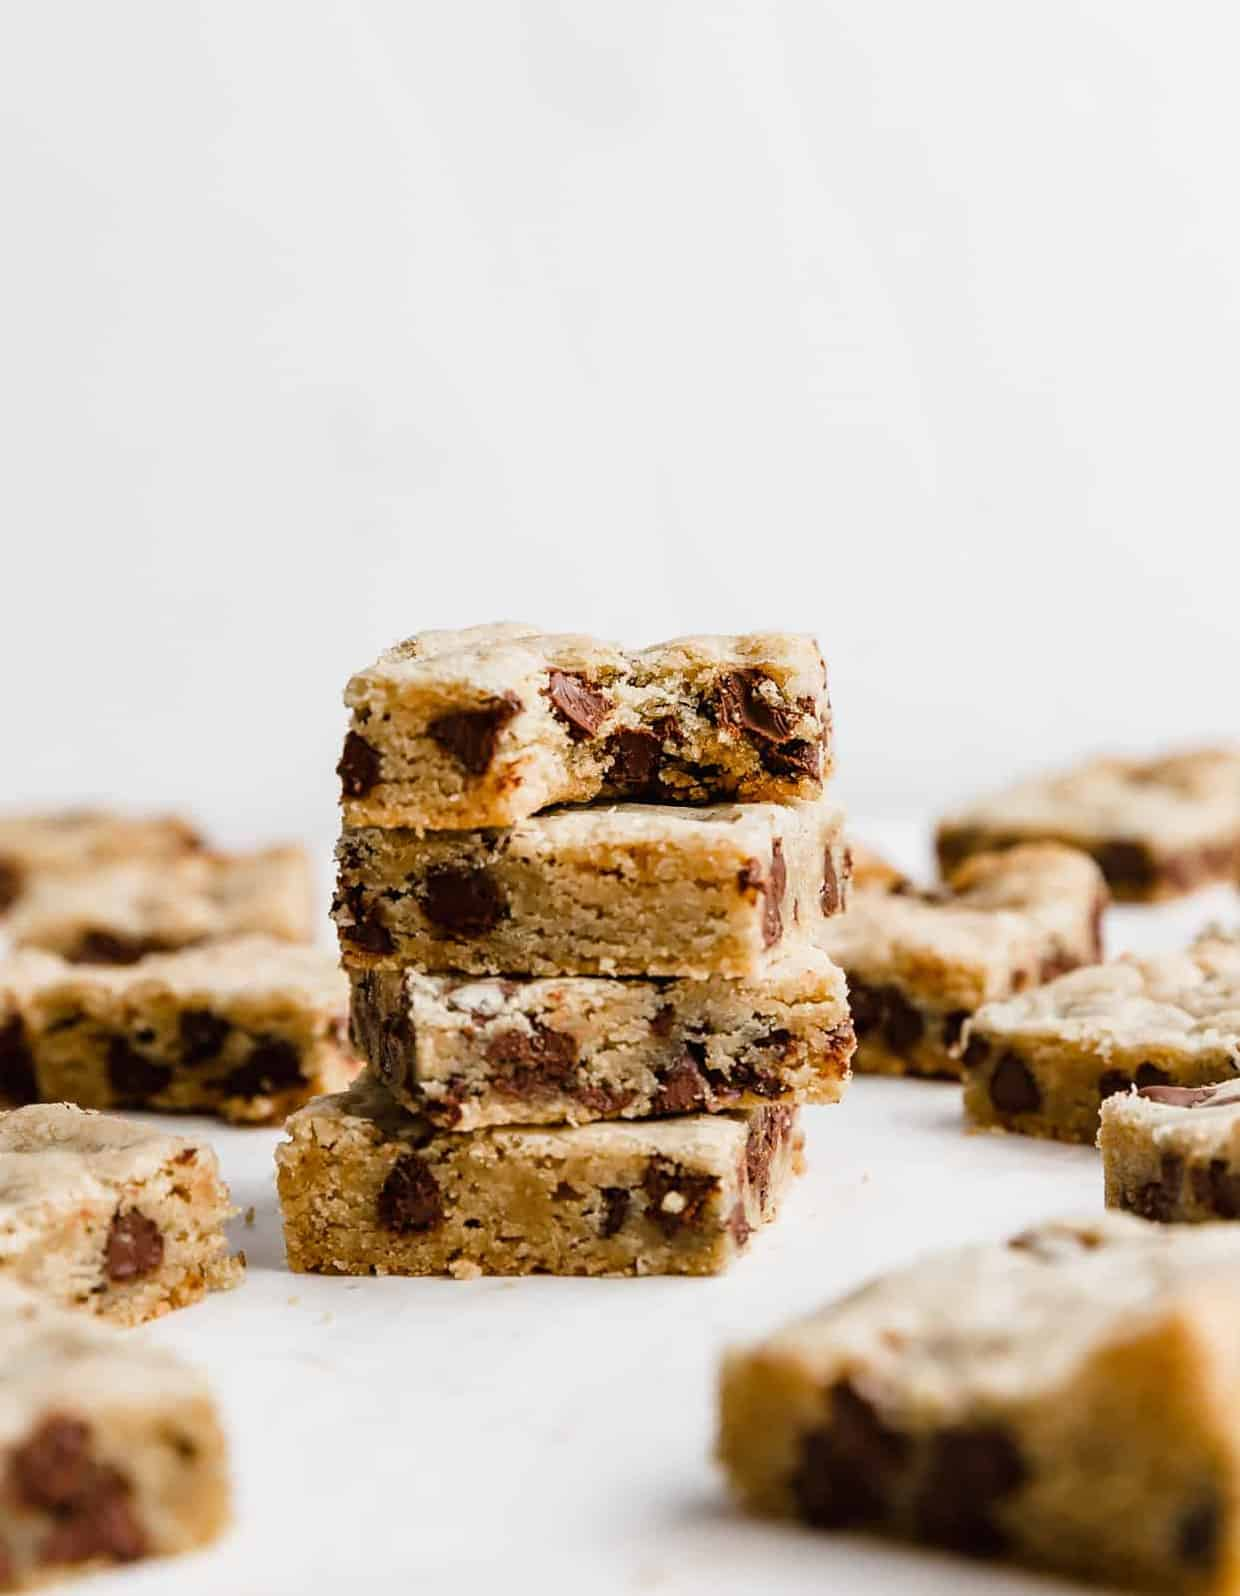 A stack of 4 Chocolate Chip Cookie Bars against a white background.